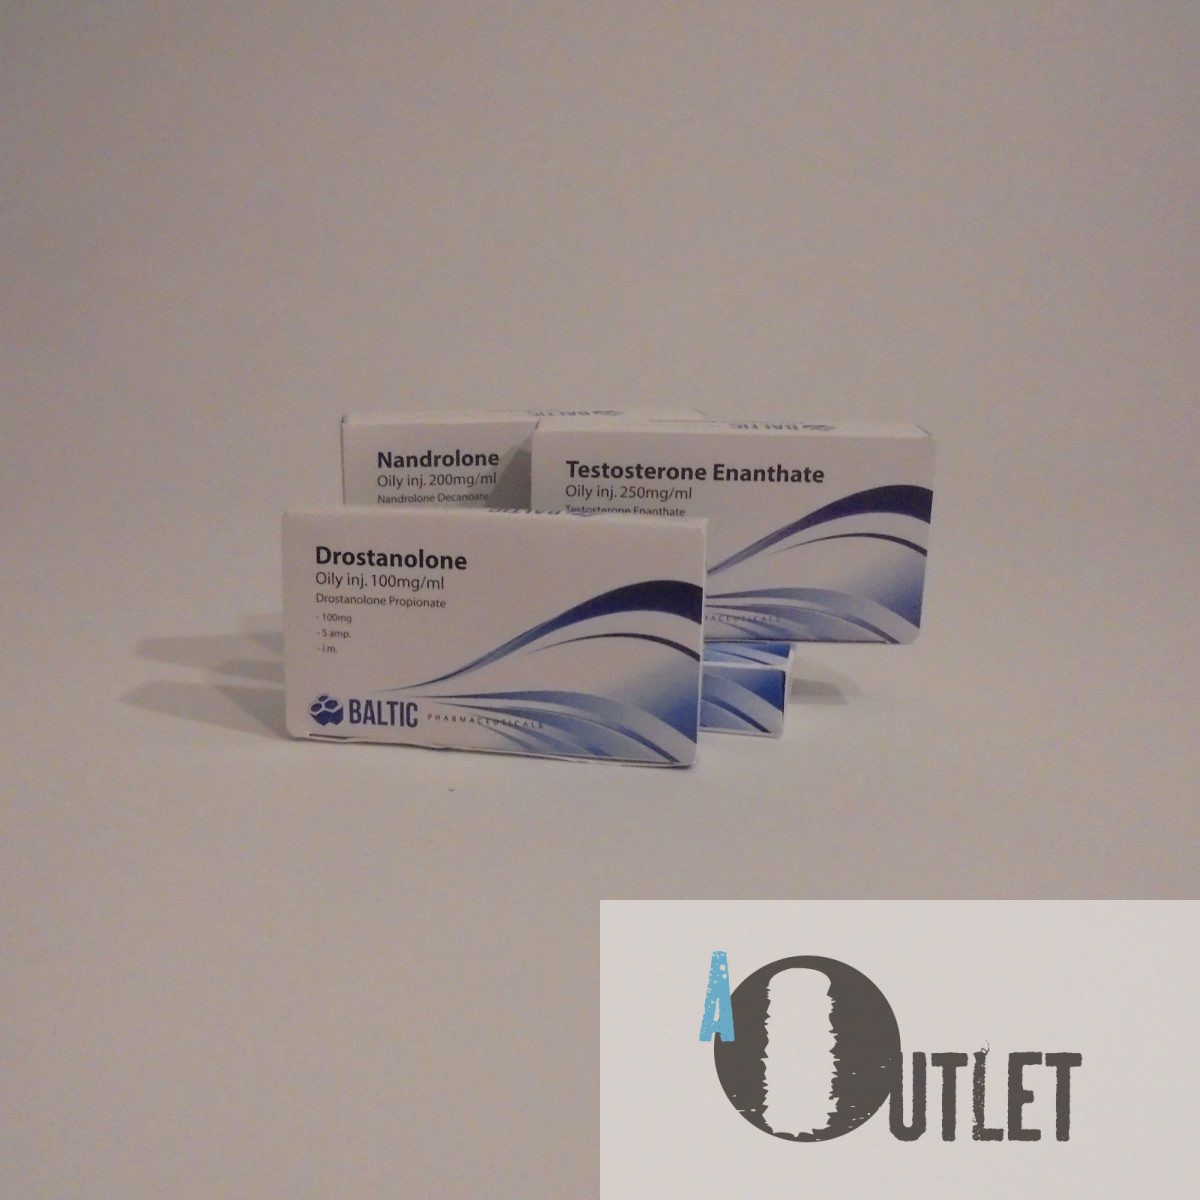 Baltic Pharmaceuticals injects